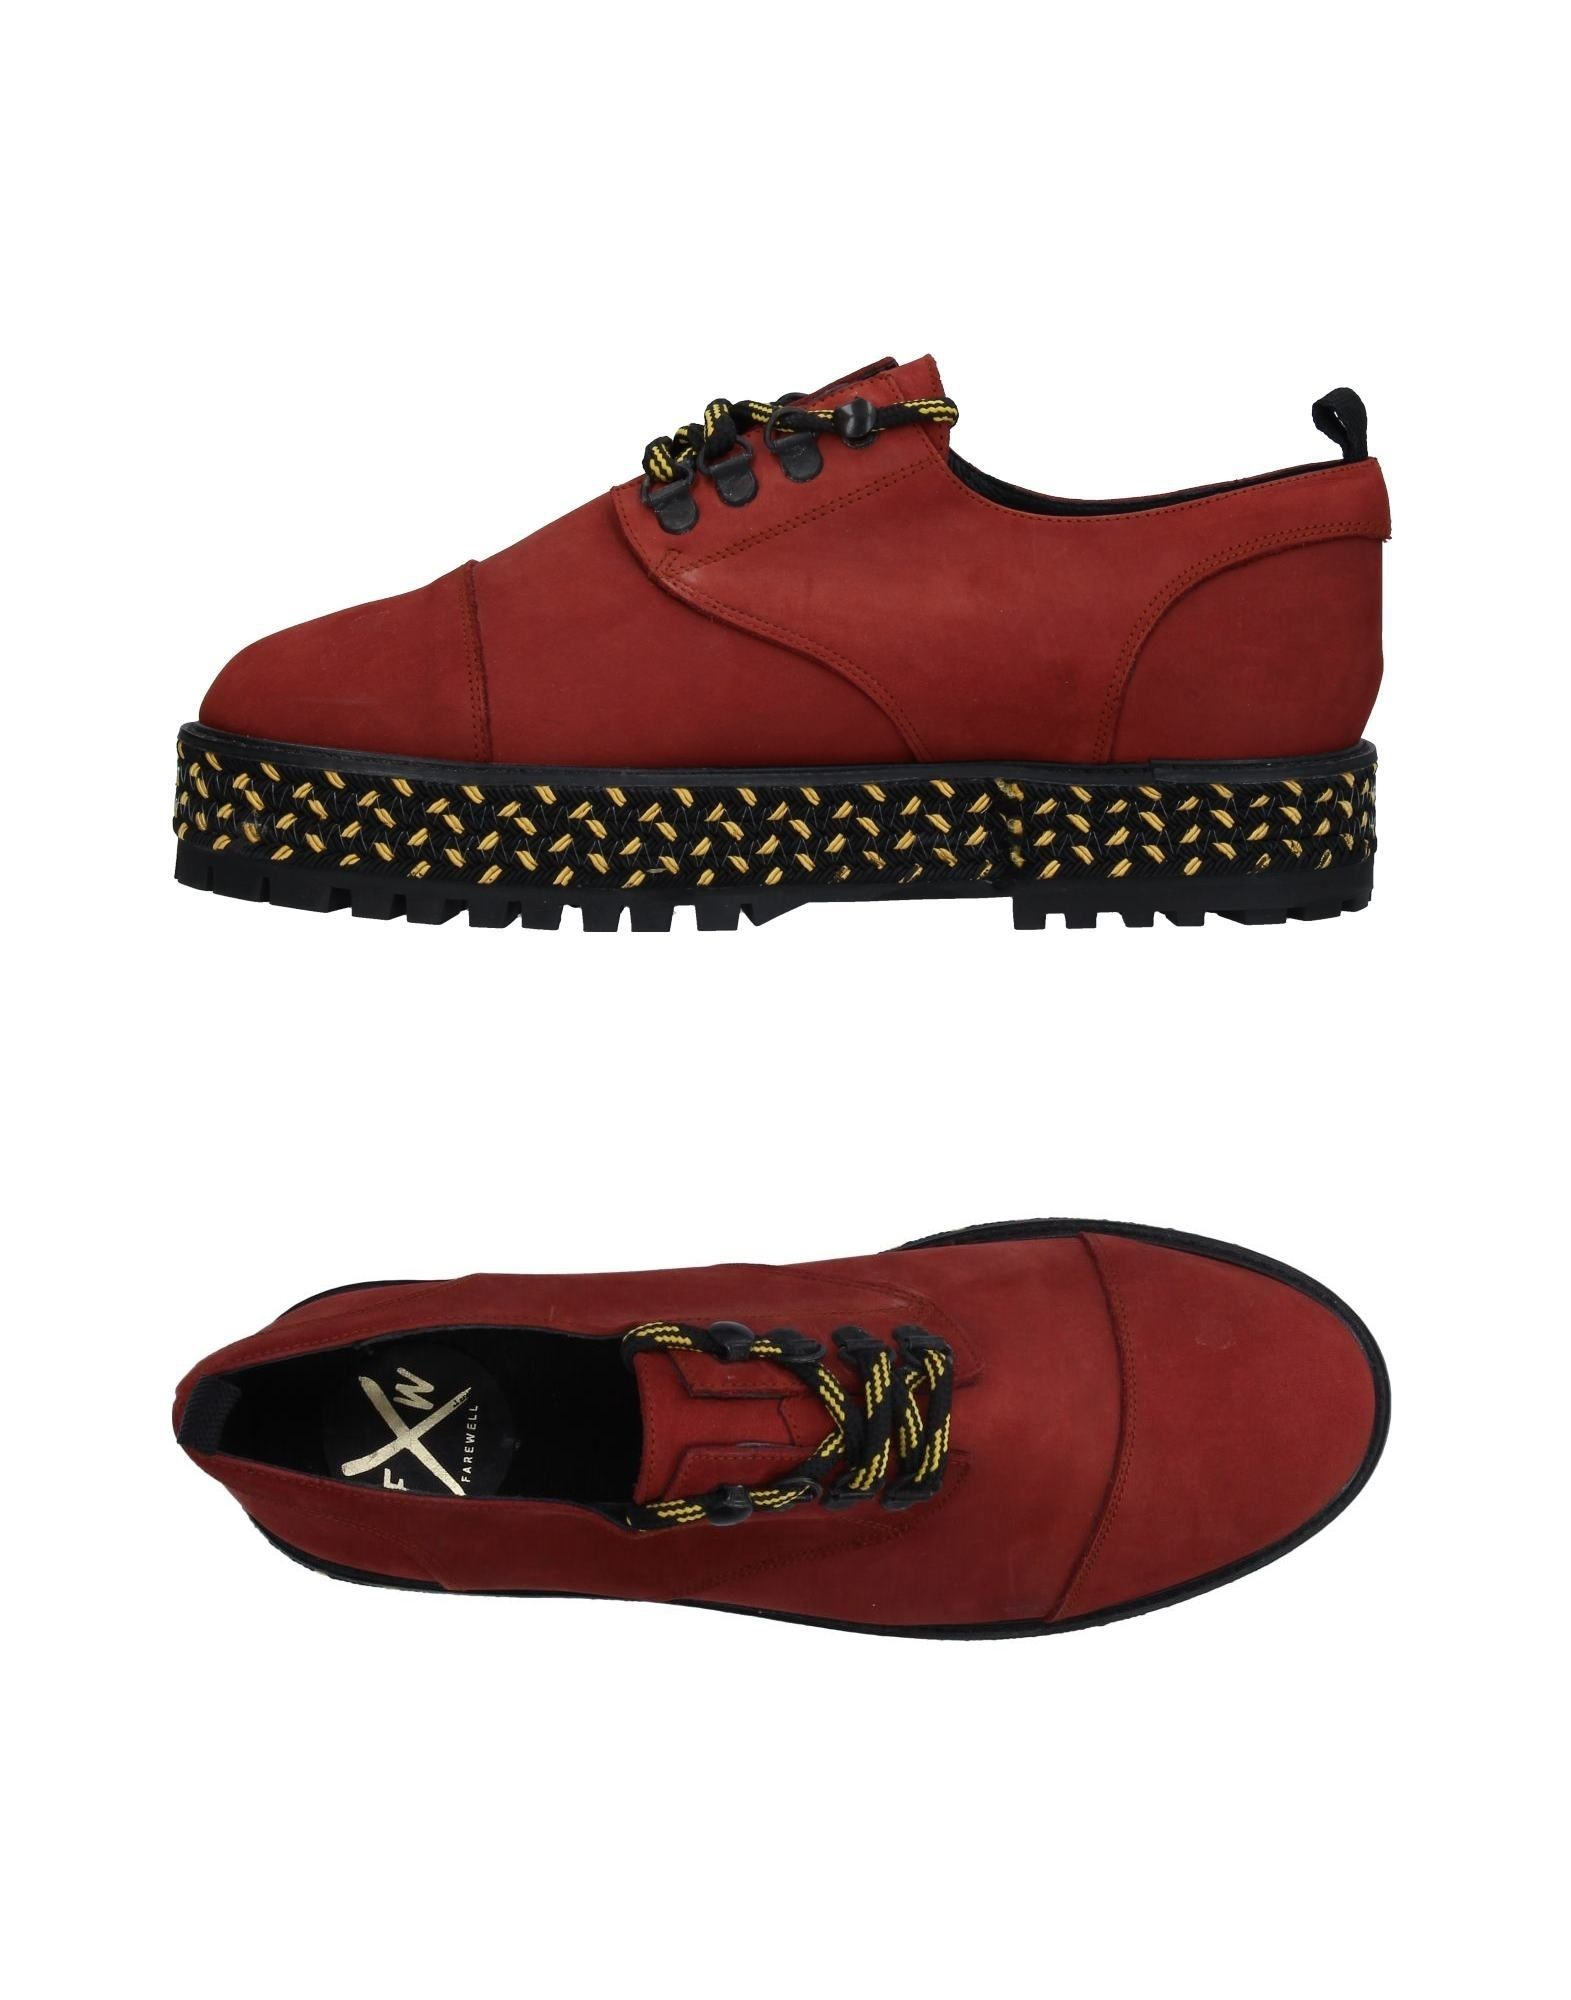 Chaussures À Lacets Farewell  Footwear Femme - Chaussures À Lacets Farewell  Footwear sur